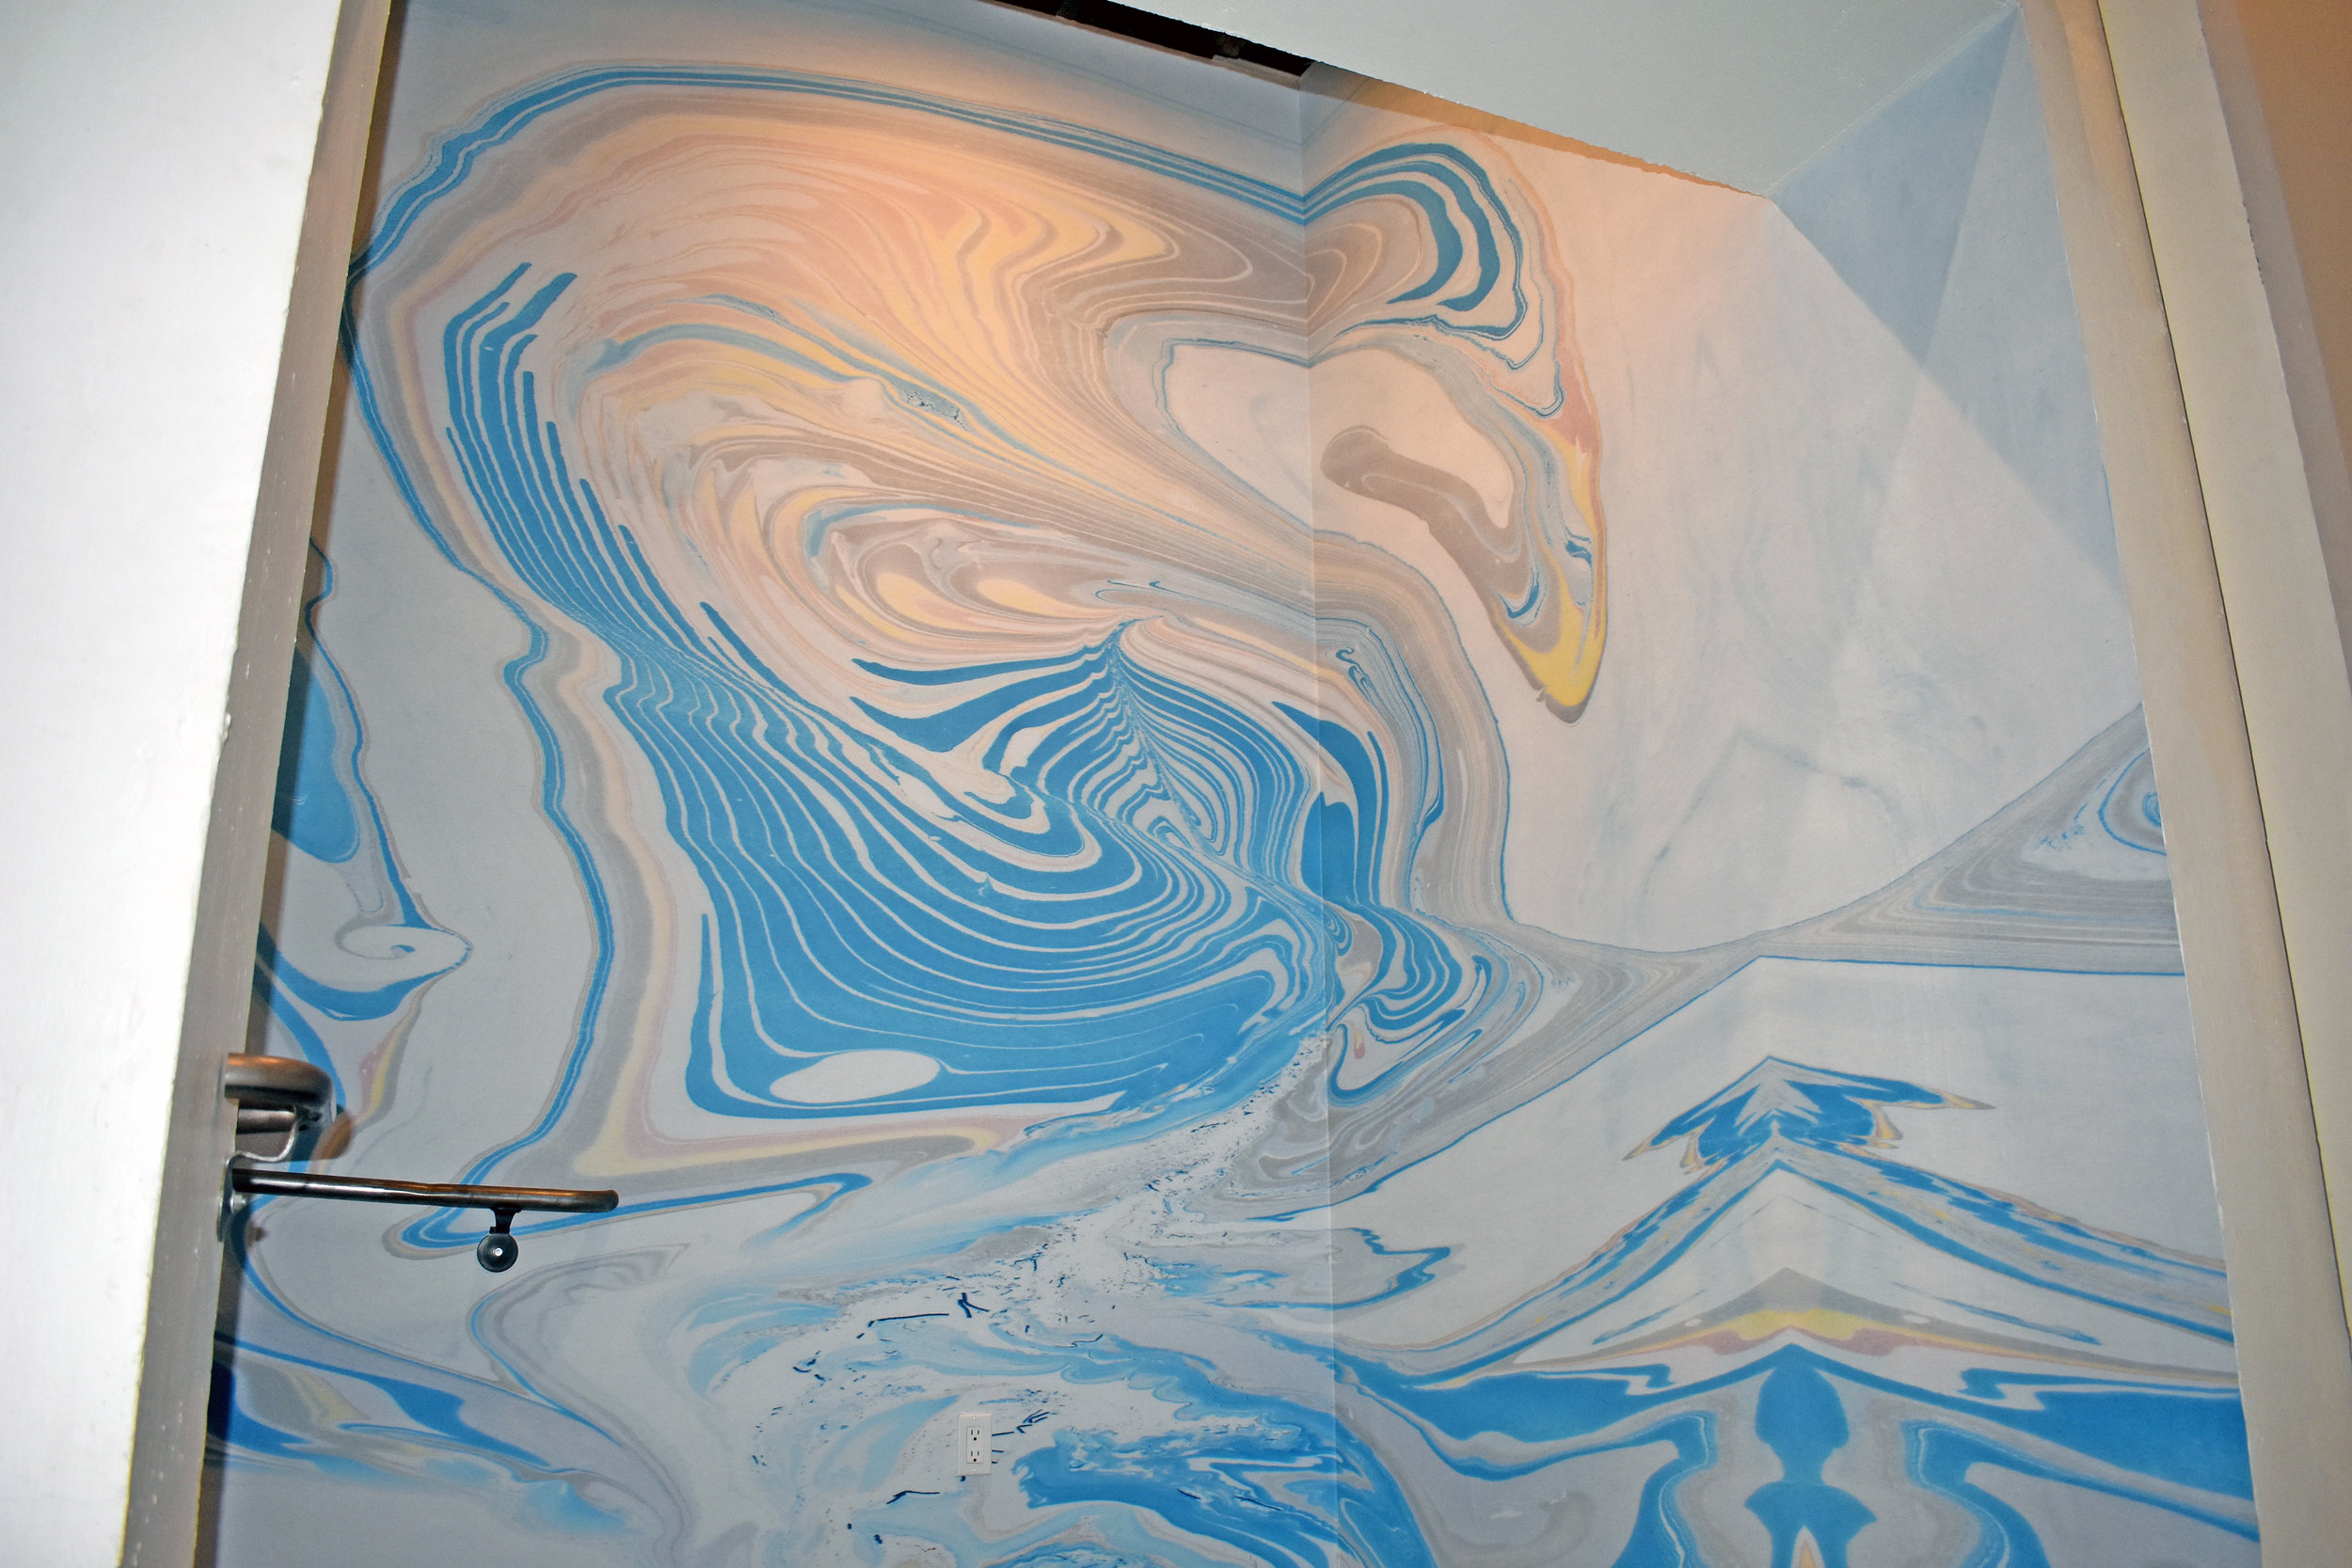 Marbled Mural Installation, Redcar Properties, Highland Park, CA. 33 ft x 12 ft. (2019)